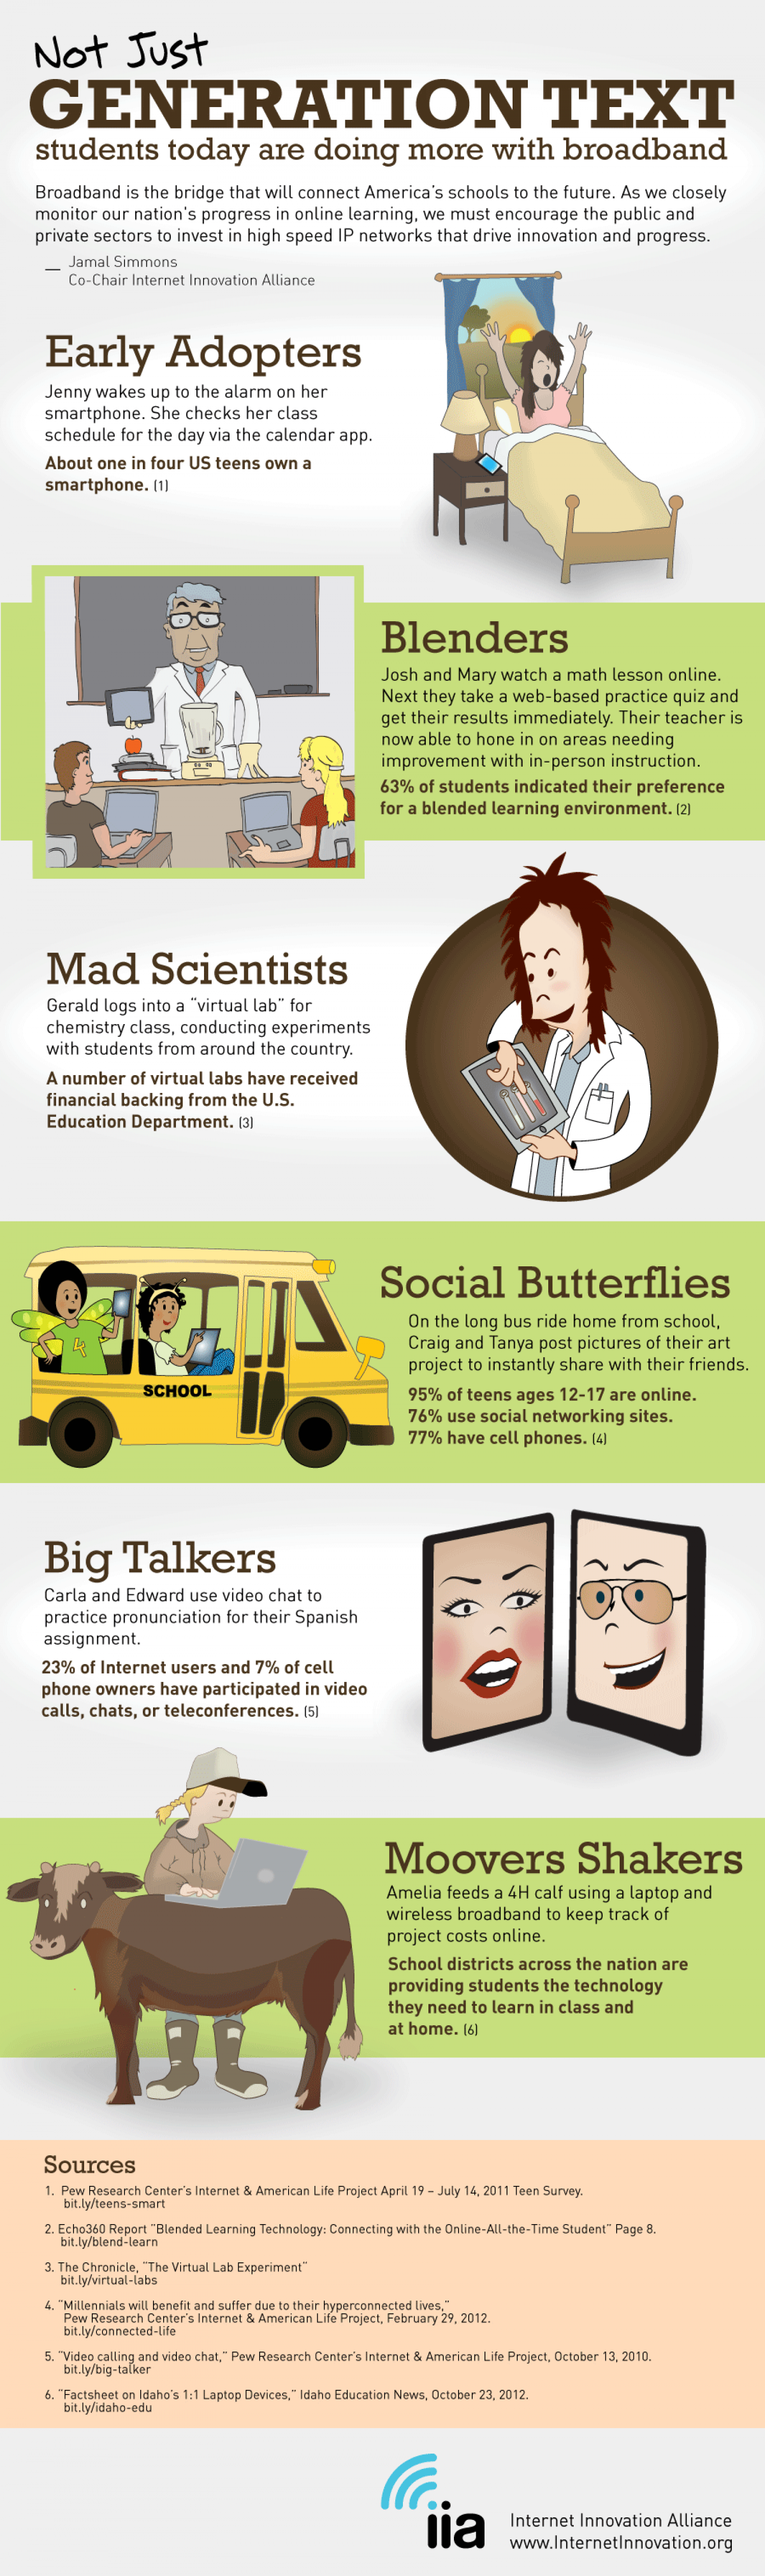 Not Just Generation Text Infographic